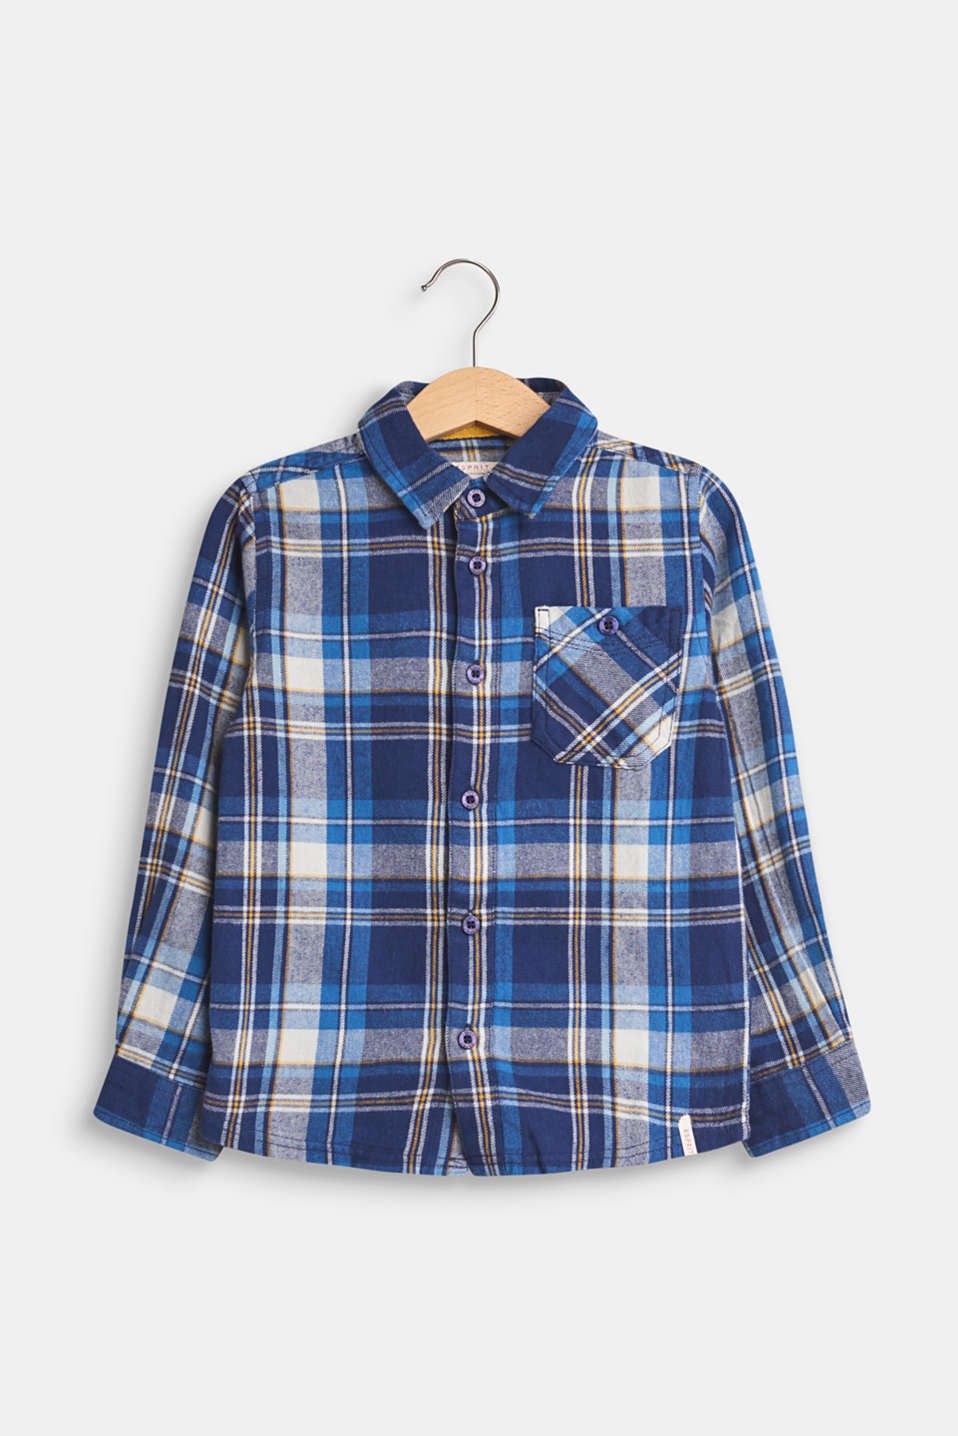 Esprit - Flannel shirt with a check pattern, 100% cotton